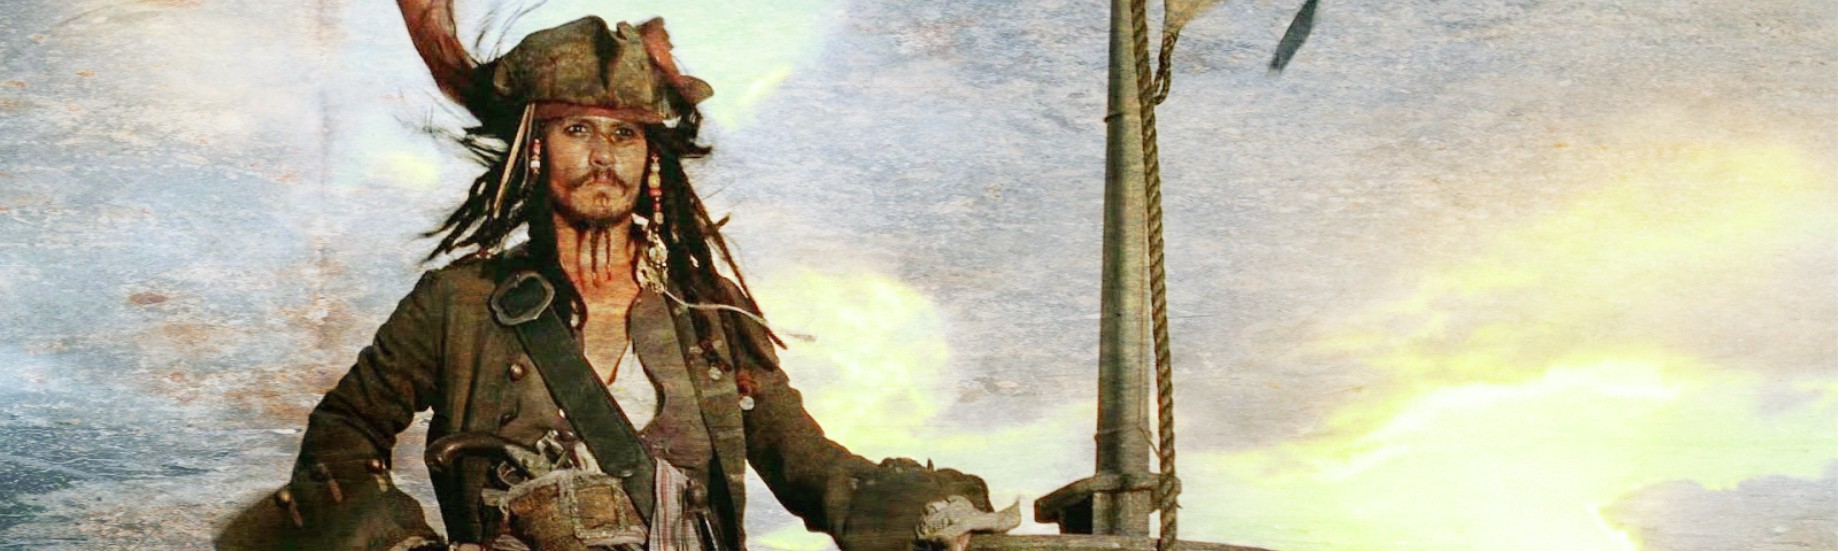 Pirates Of The Caribbean The Curse Of The Black Pearl By Myke S Movies Myke S Movies Medium The silica pearl is a material used in the creation of electronics, and a lot of items after level 50. pirates of the caribbean the curse of